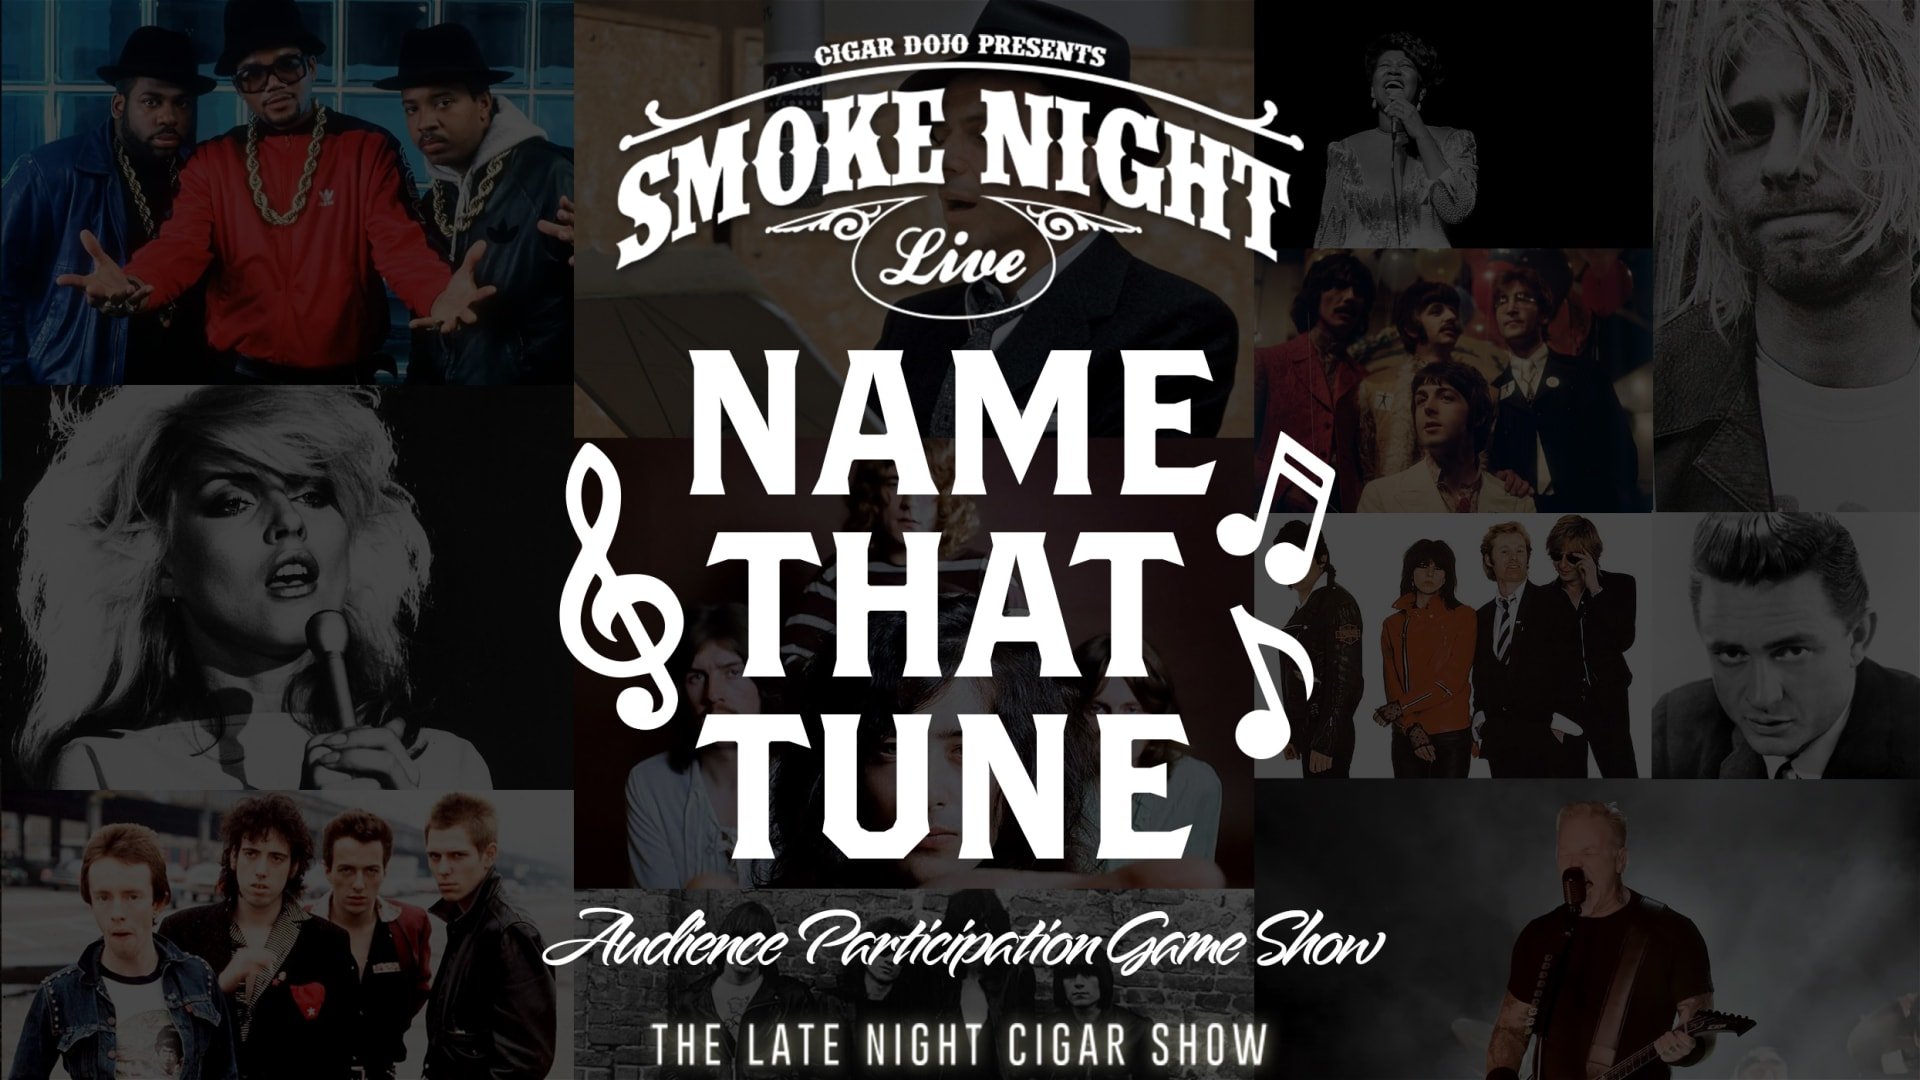 Smoke Night LIVE Name That Tune (3rd edition) Featured Image